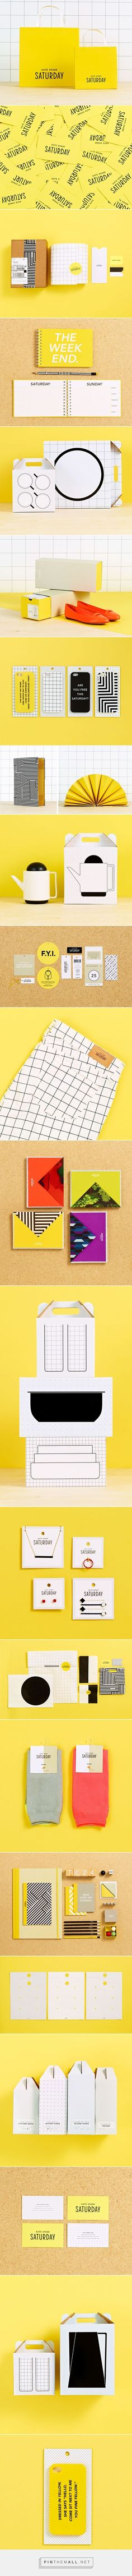 Kate Spade Saturday Packaging and Product on Behance. - a grouped images picture - Pin Them All Brand Identity Design, Graphic Design Branding, Corporate Design, Corporate Identity, Business Branding, Visual Identity, Typography Design, Lettering, Logo Design